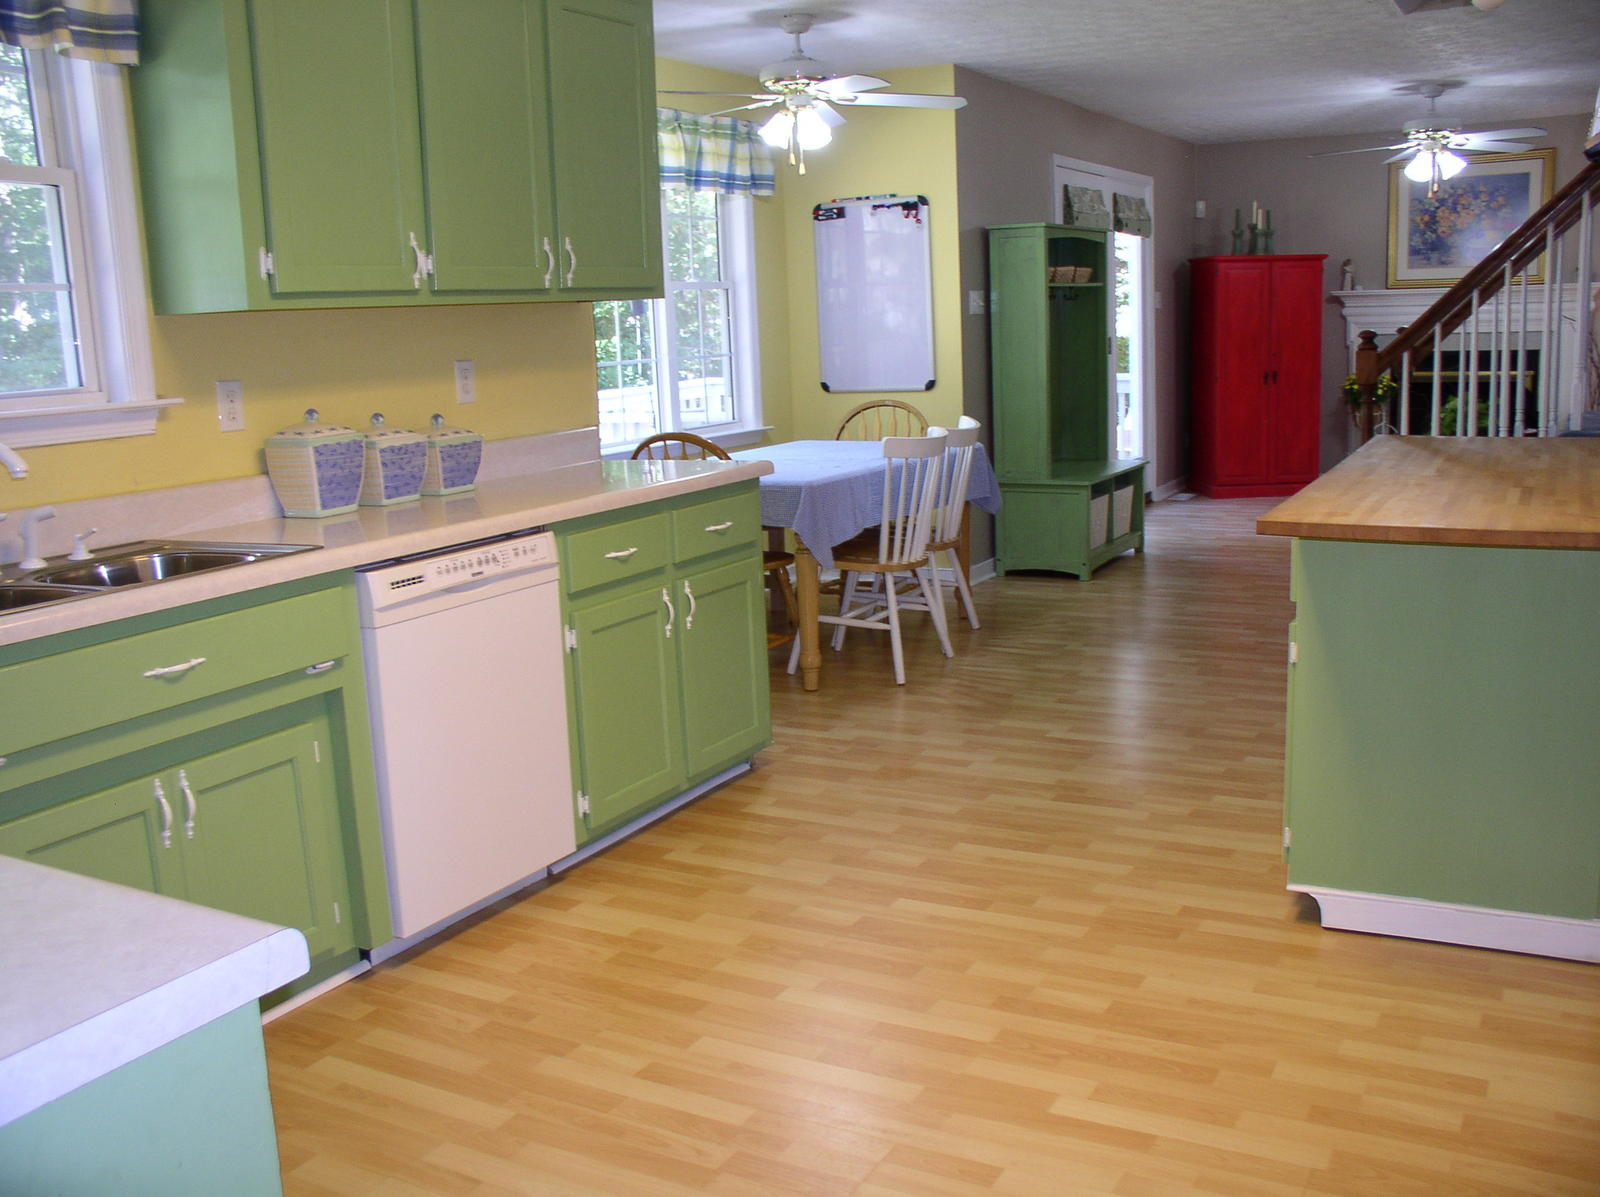 Painting your kitchen cabinets painting tips from the pros for Best color paint for kitchen cabinets